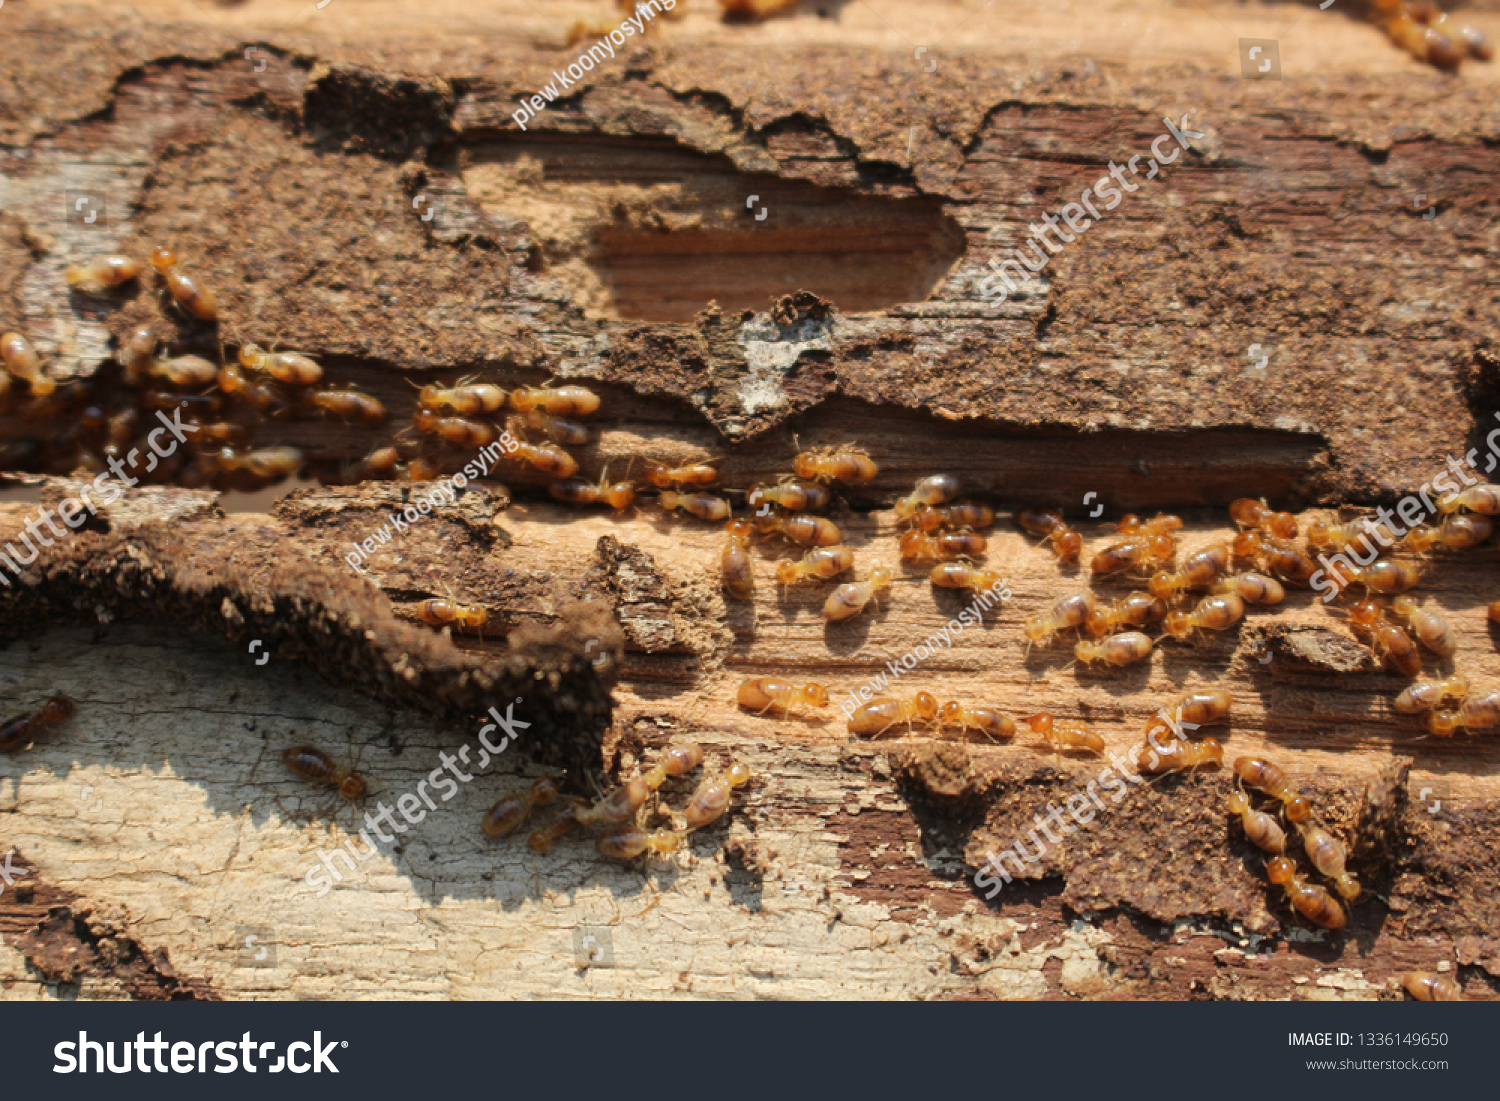 Termites are eating the wood of the house. They destroy houses, wooden parts and destroy wood products. #1336149650